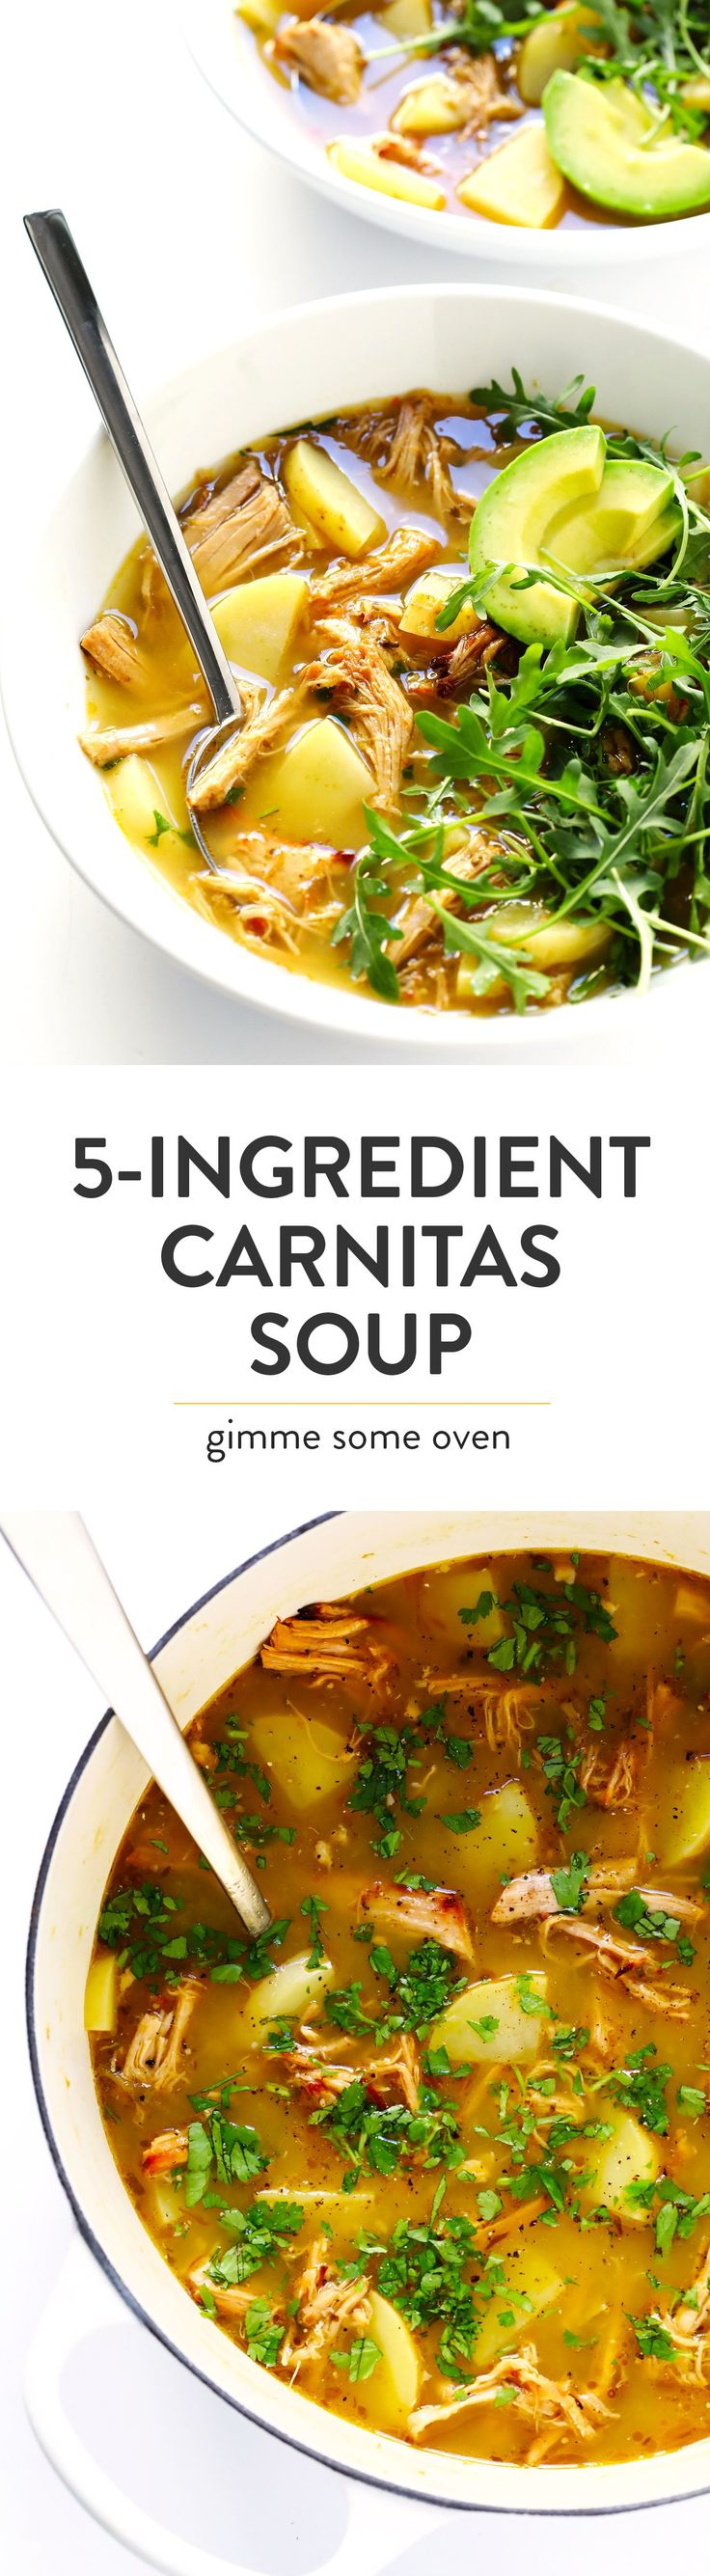 This 5-Ingredient Carnitas Soup is super-easy to make with leftover pork (or chicken) carnitas, potatoes, and salsa verde. I highly recommend loading it up with lots of toppings too, such as arugula, avocado, cilantro and jalapeño peppers. It's the perfect Mexican dinner that's easy to make on the stovetop, or in the Crock Pot (slow cooker) or Instant Pot (pressure cooker). And it's naturally gluten-free!   Gimme Some Oven